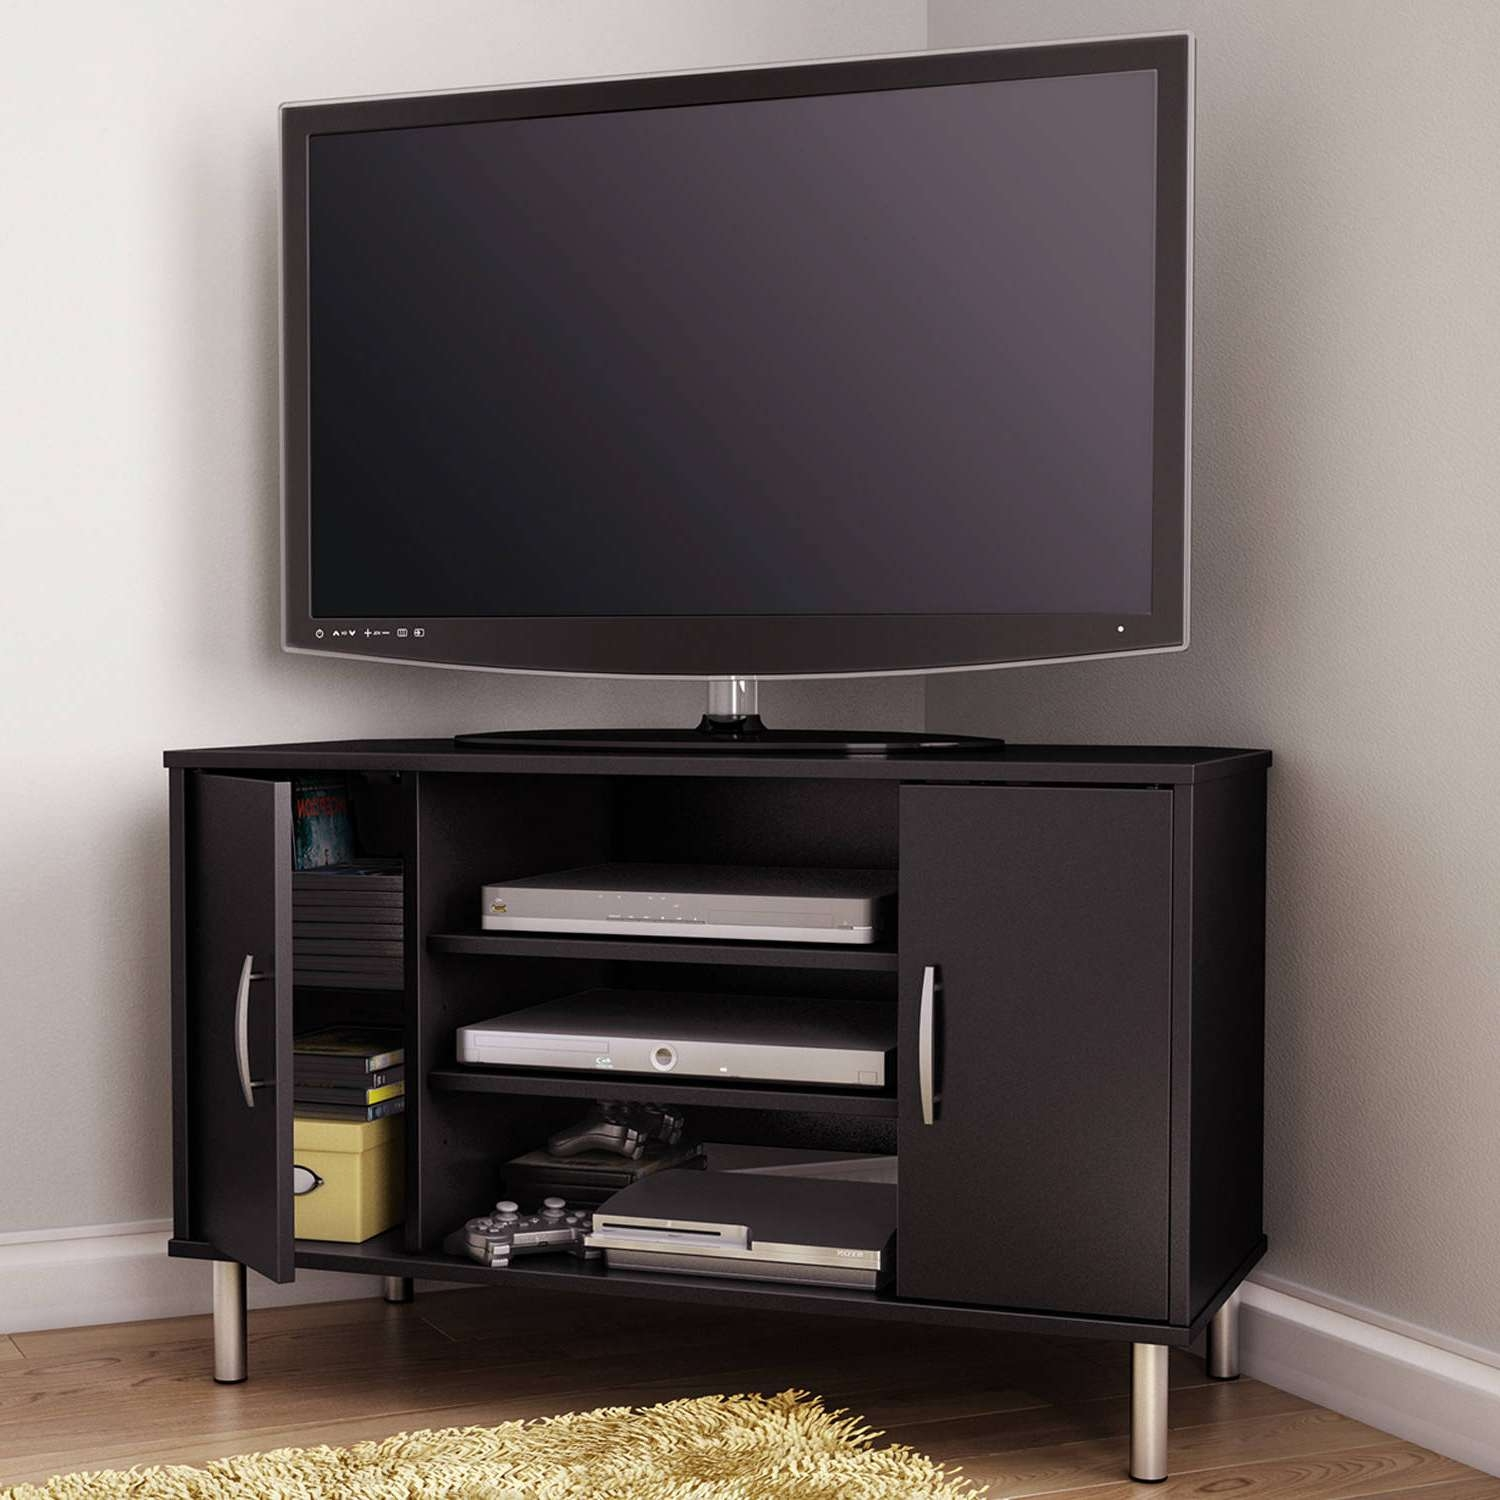 South Shore Renta Corner Tv Stand For Trends And Modern Picture With Contemporary Corner Tv Stands (View 8 of 15)